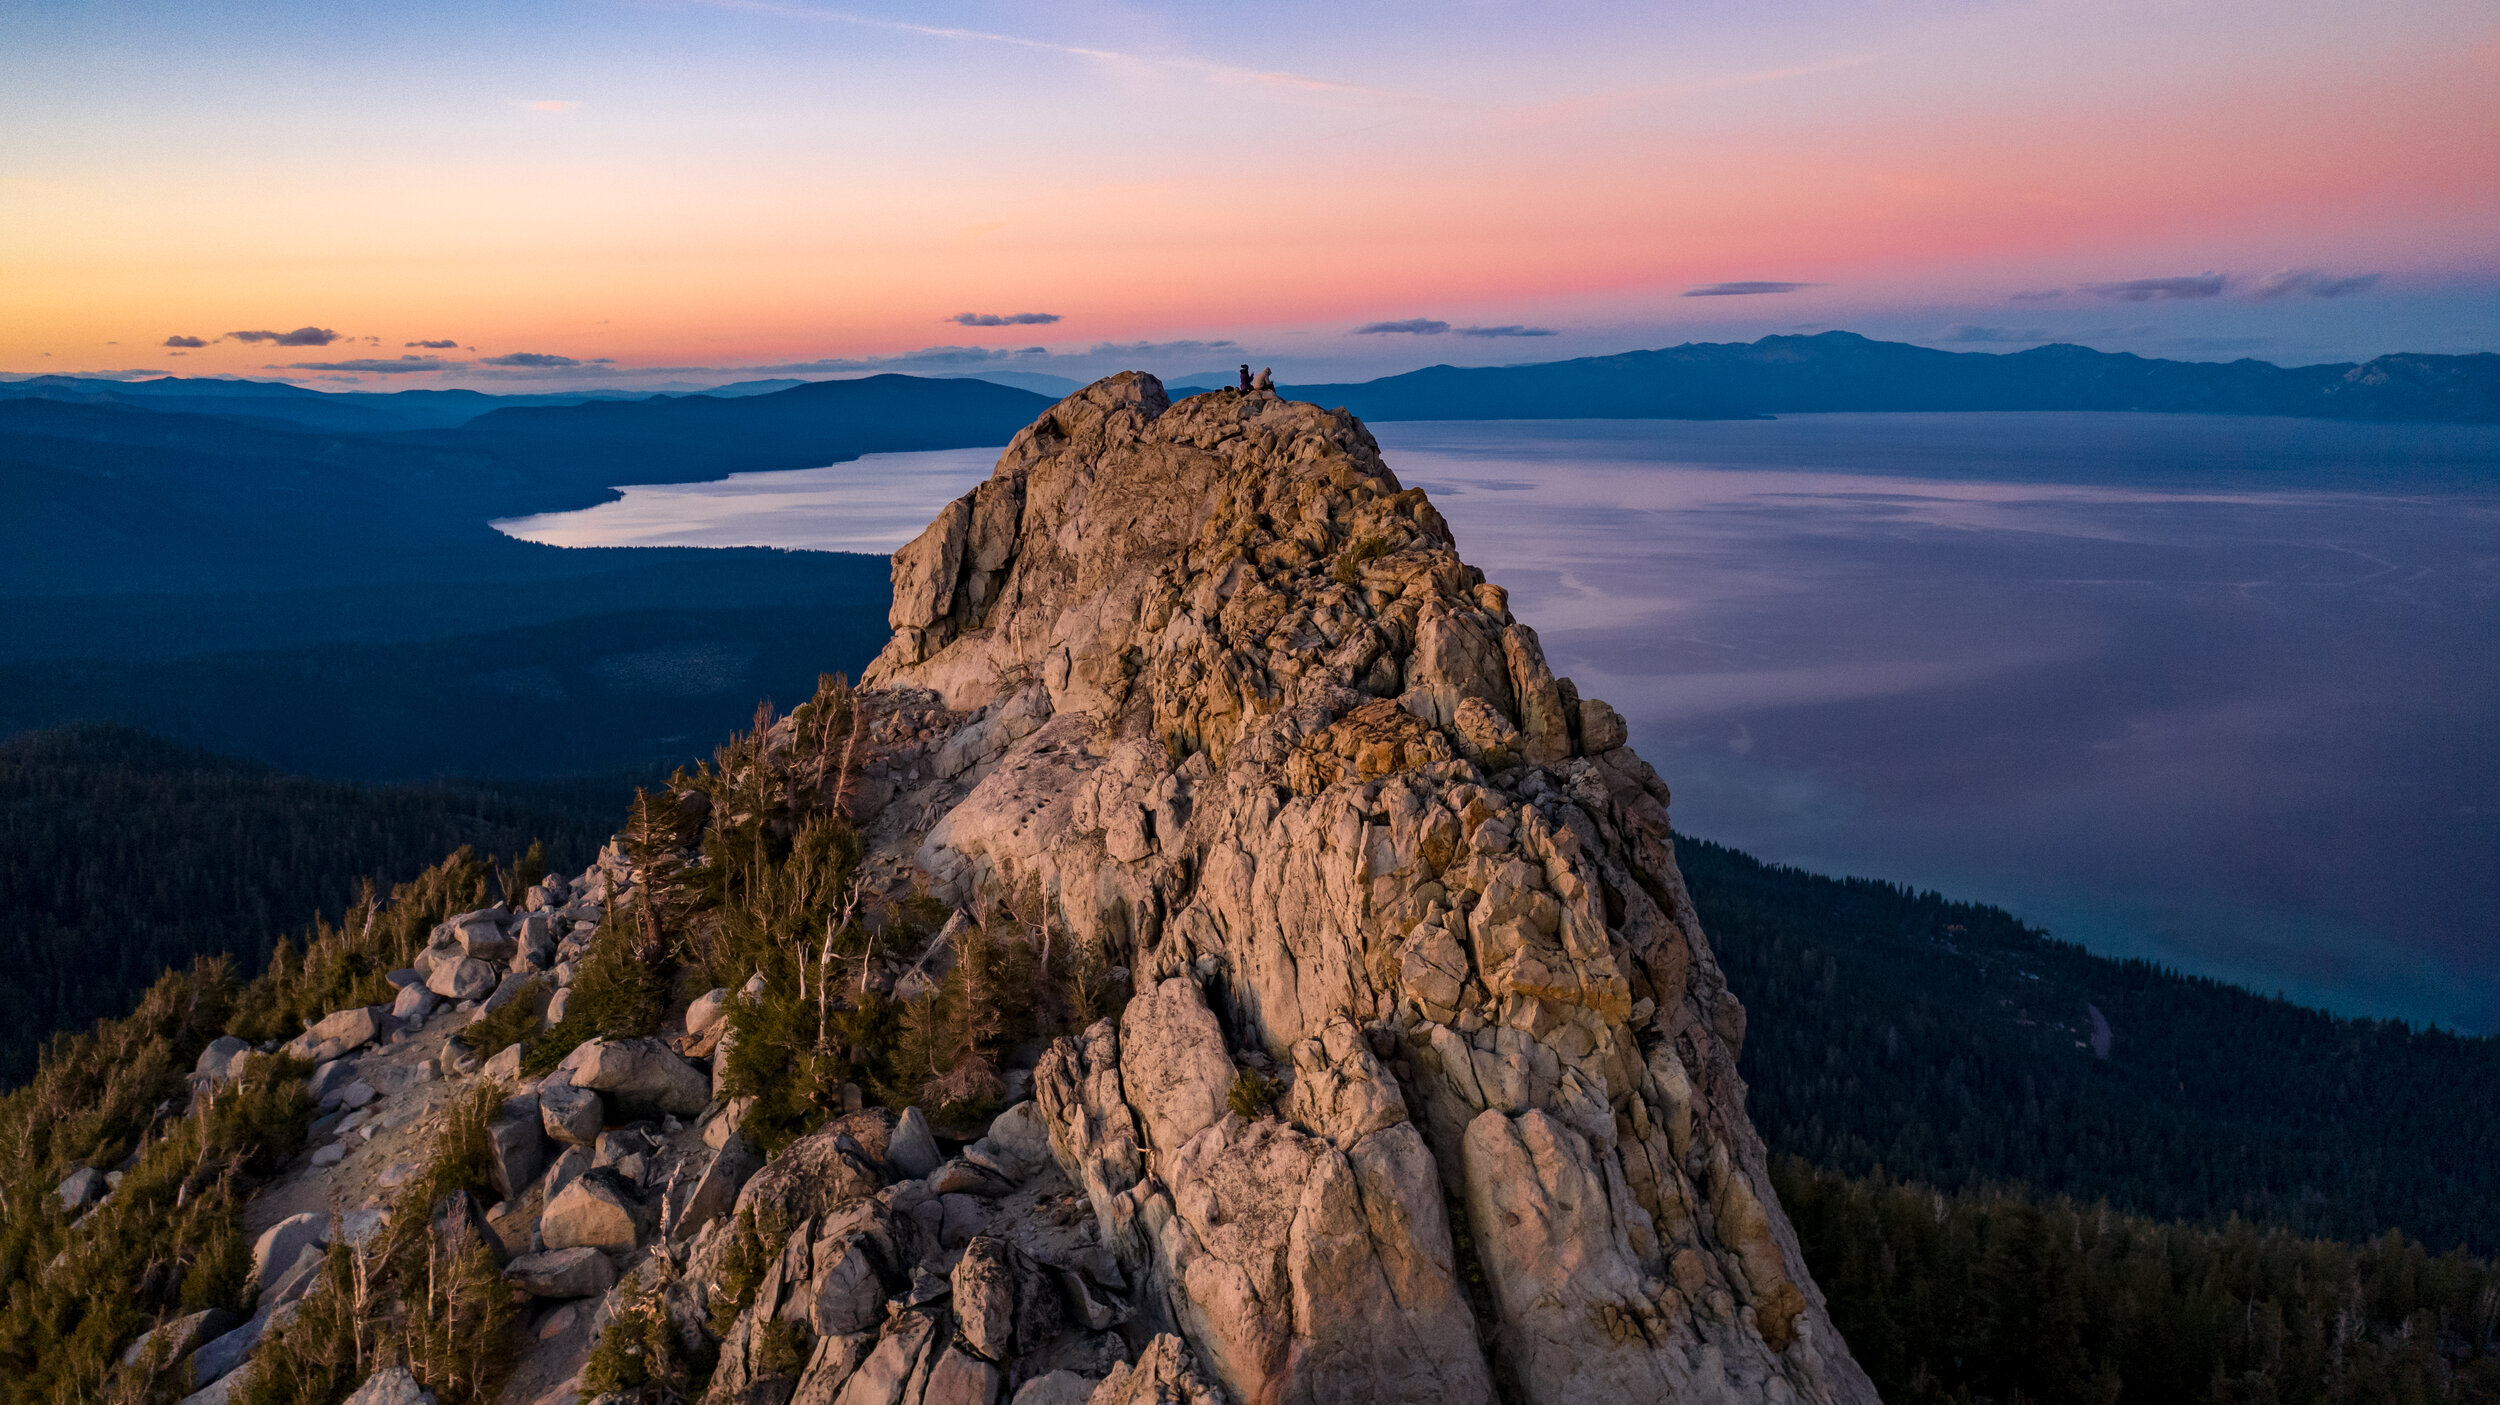 Sunset drone photography of Lake Tahoe